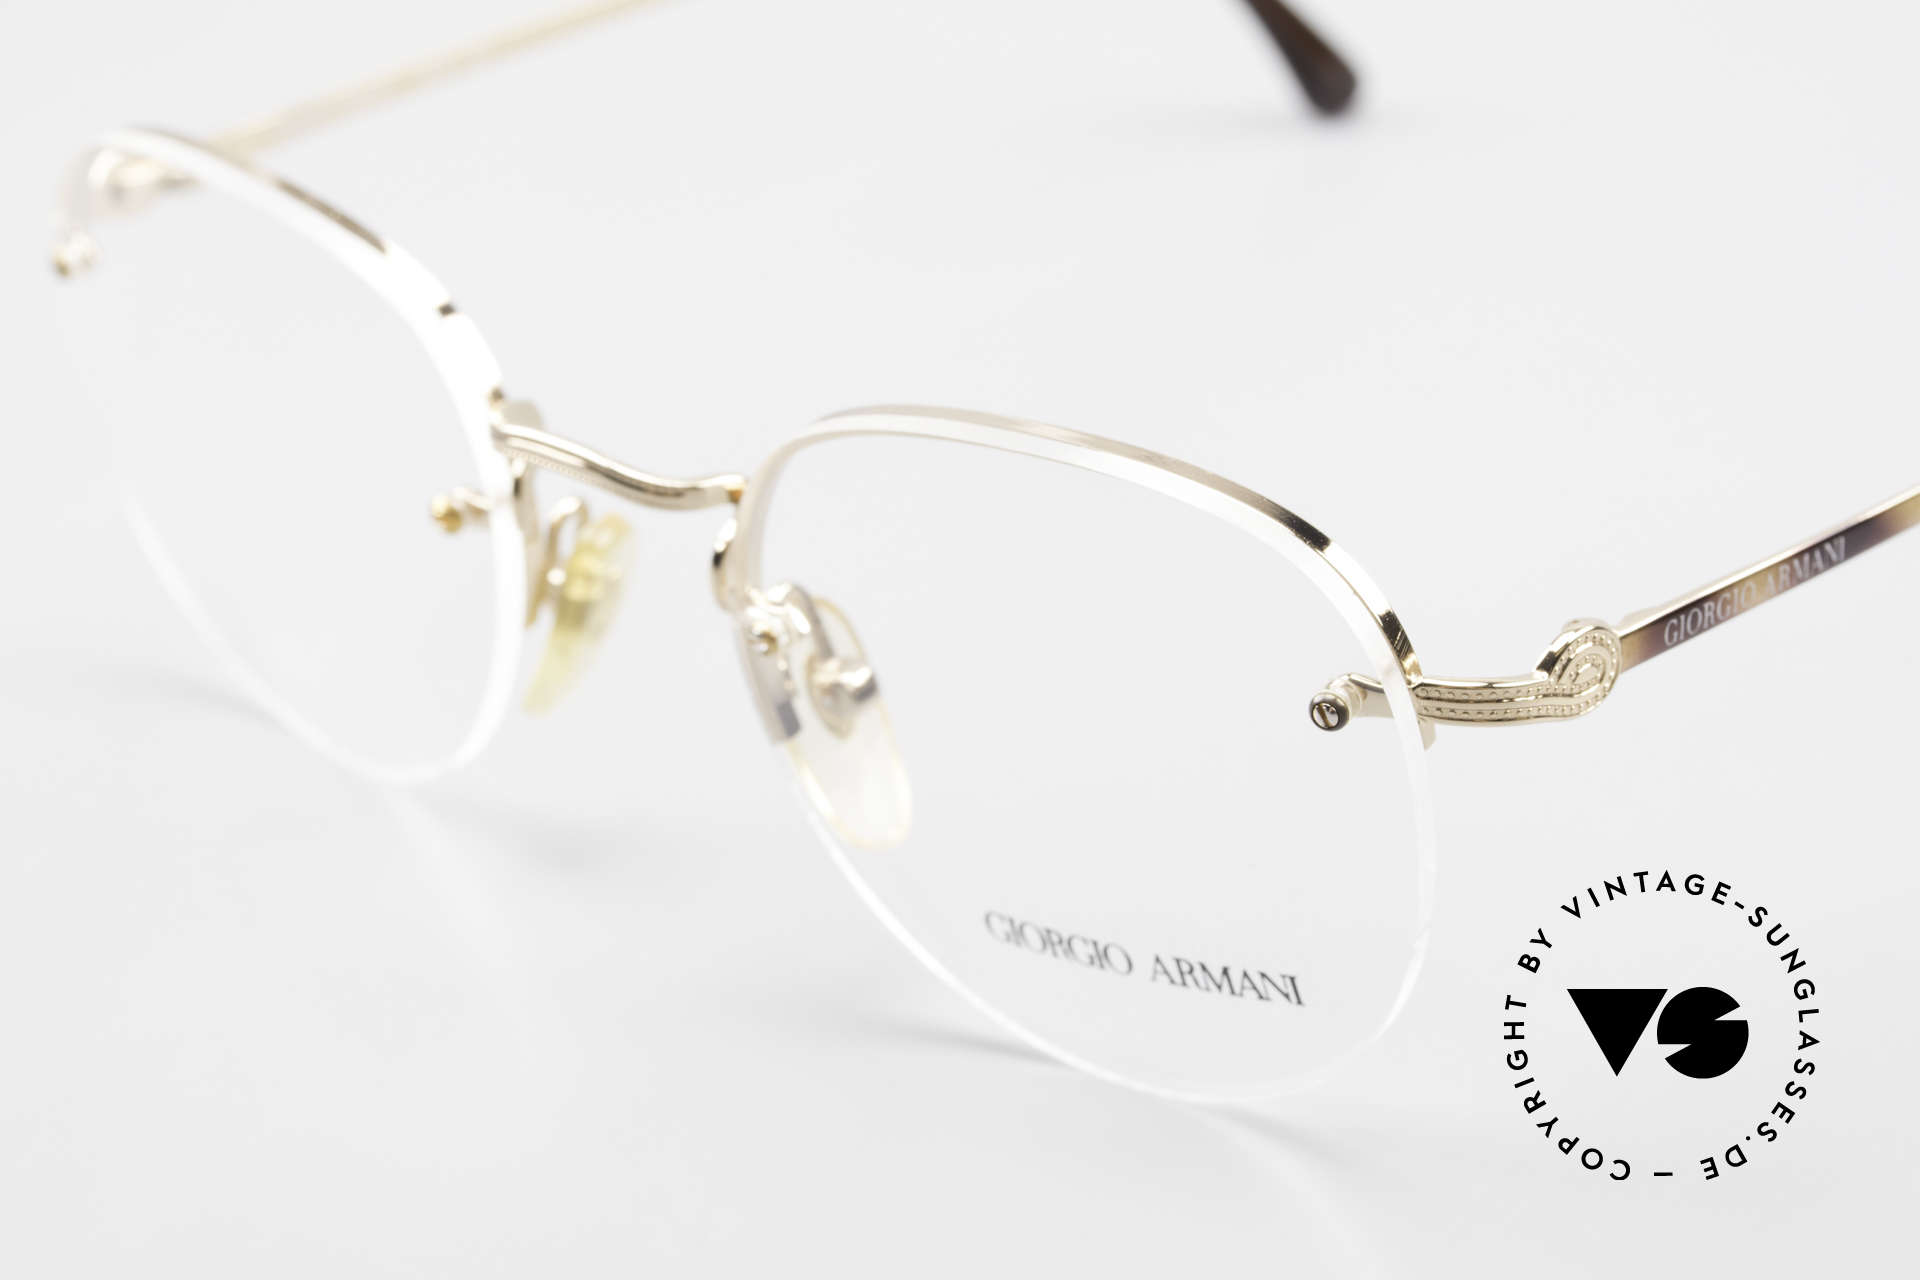 Giorgio Armani 161 Rimless Vintage Eyeglasses 80s, unworn, NOS, one of a kind and outstanding quality, Made for Men and Women